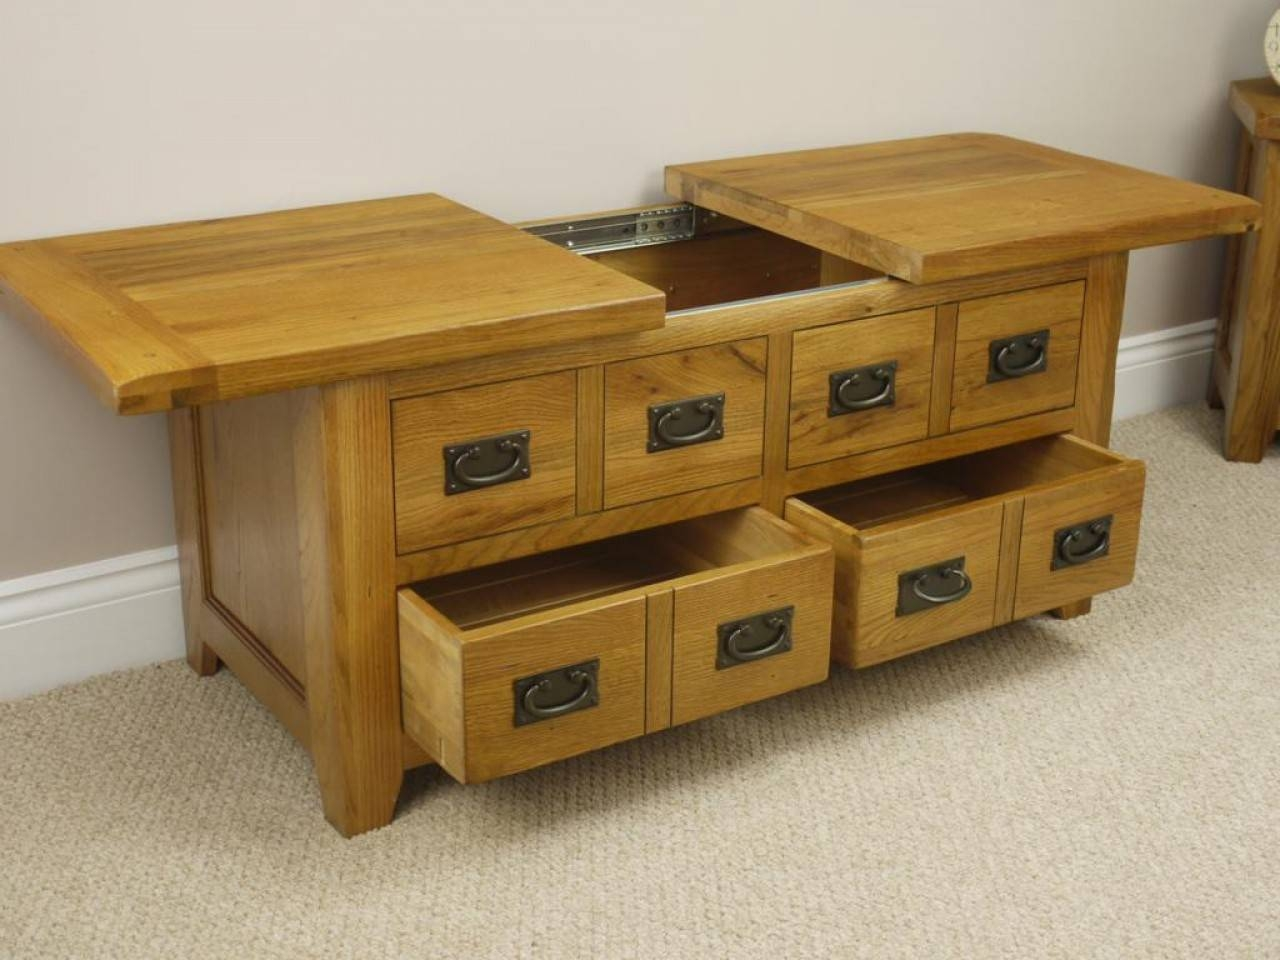 Square Oak Coffee Tables With Storage | Coffee Tables Decoration regarding Oak Coffee Table Sets (Image 28 of 30)